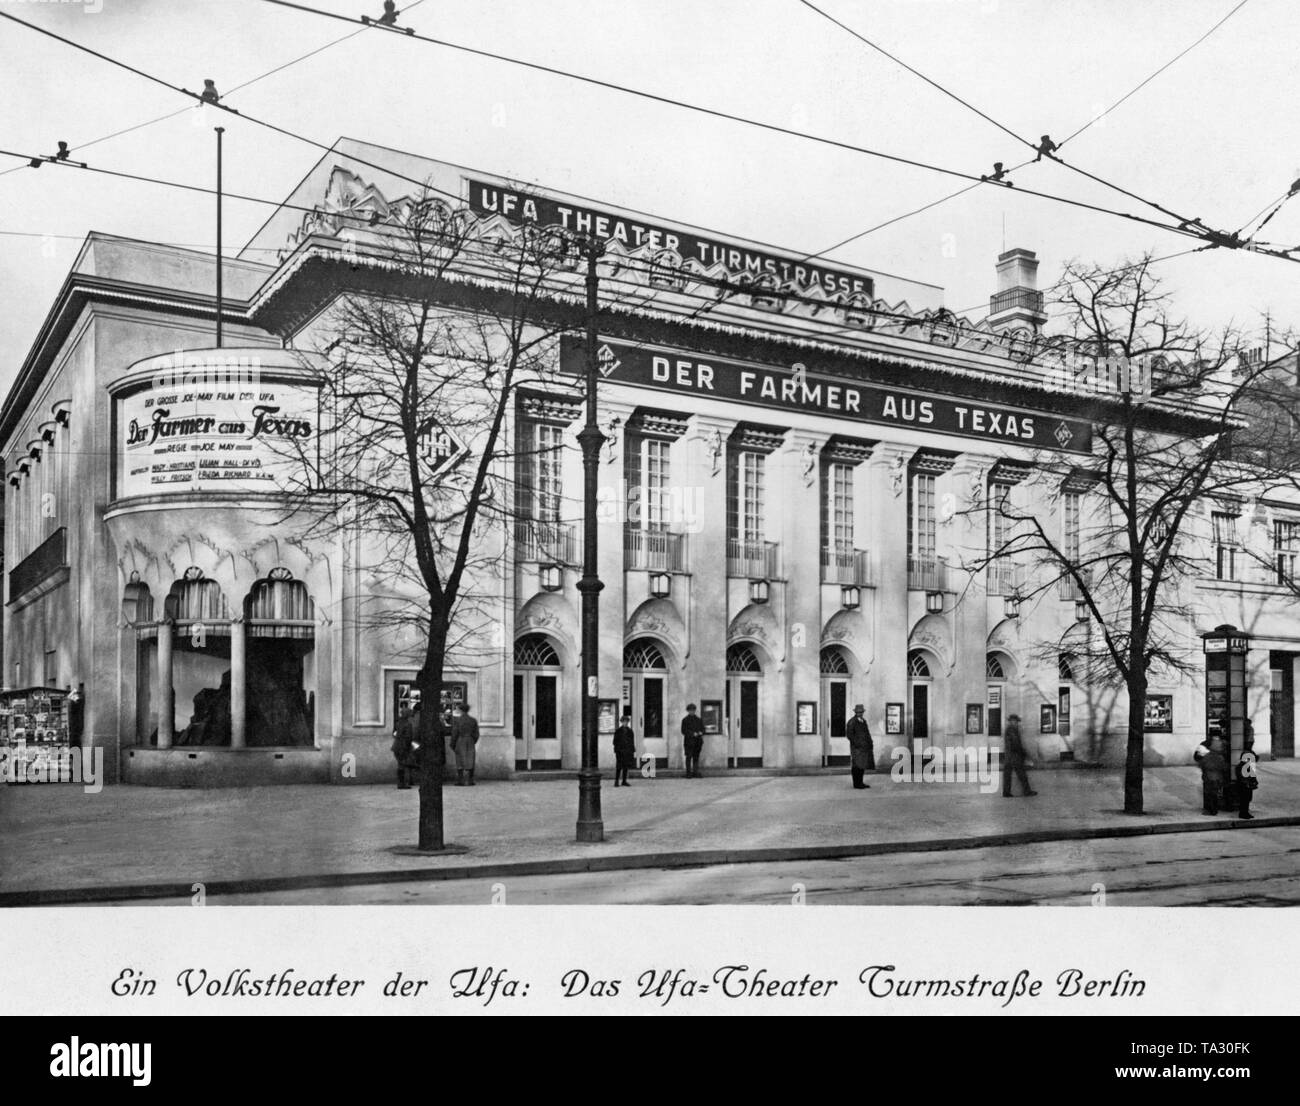 This picture shows a view of the UFA-Theater Turmstrasse. The current film is 'The Farmer from Texas', directed by Joe May. - Stock Image